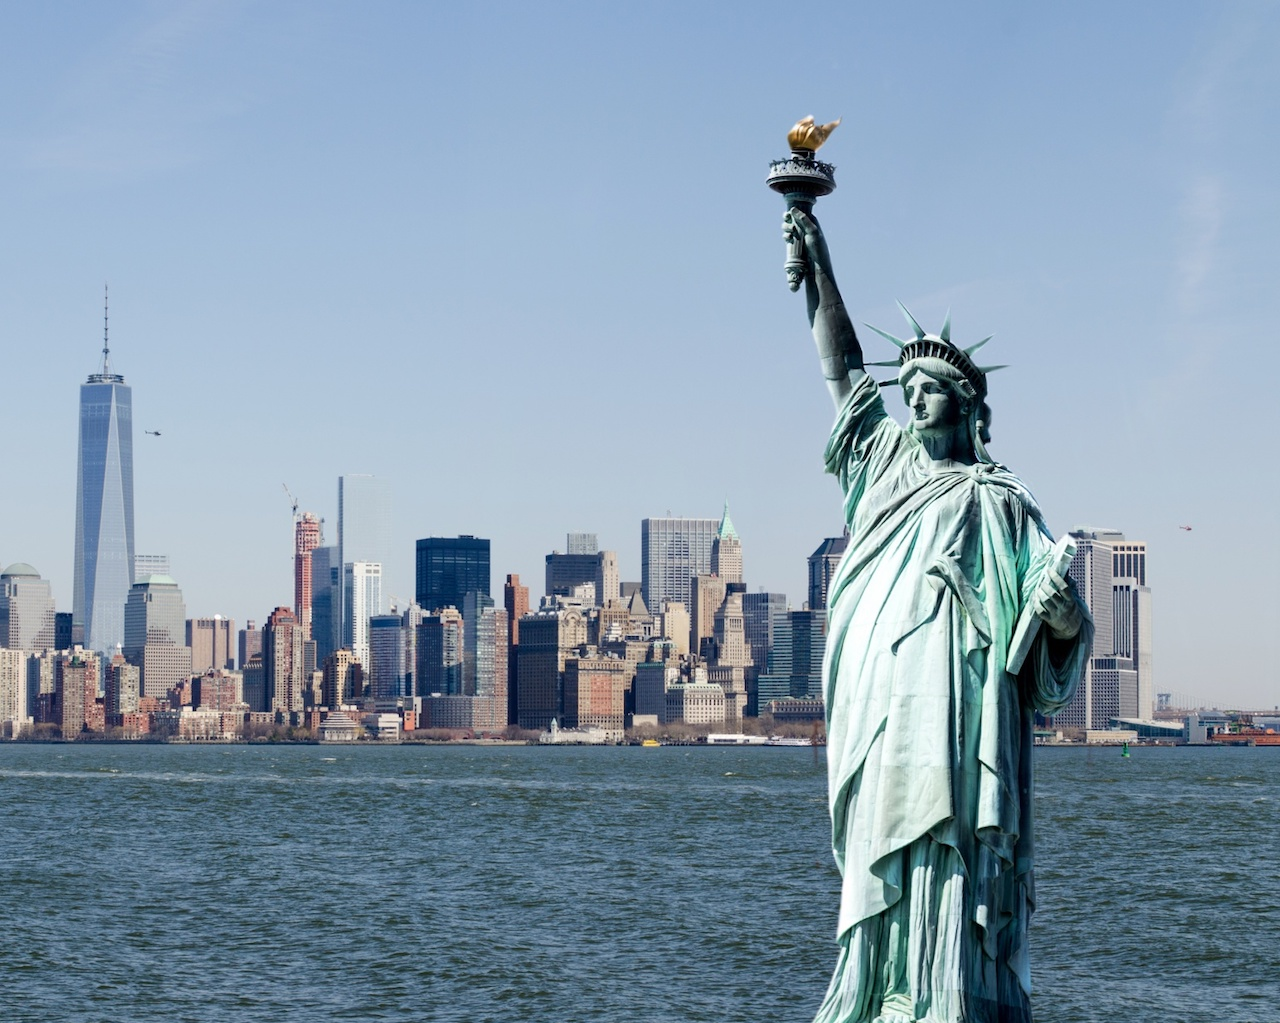 https://www.publicdomainpictures.net/en/view-image.php?image=167249&picture=statue-of-liberty